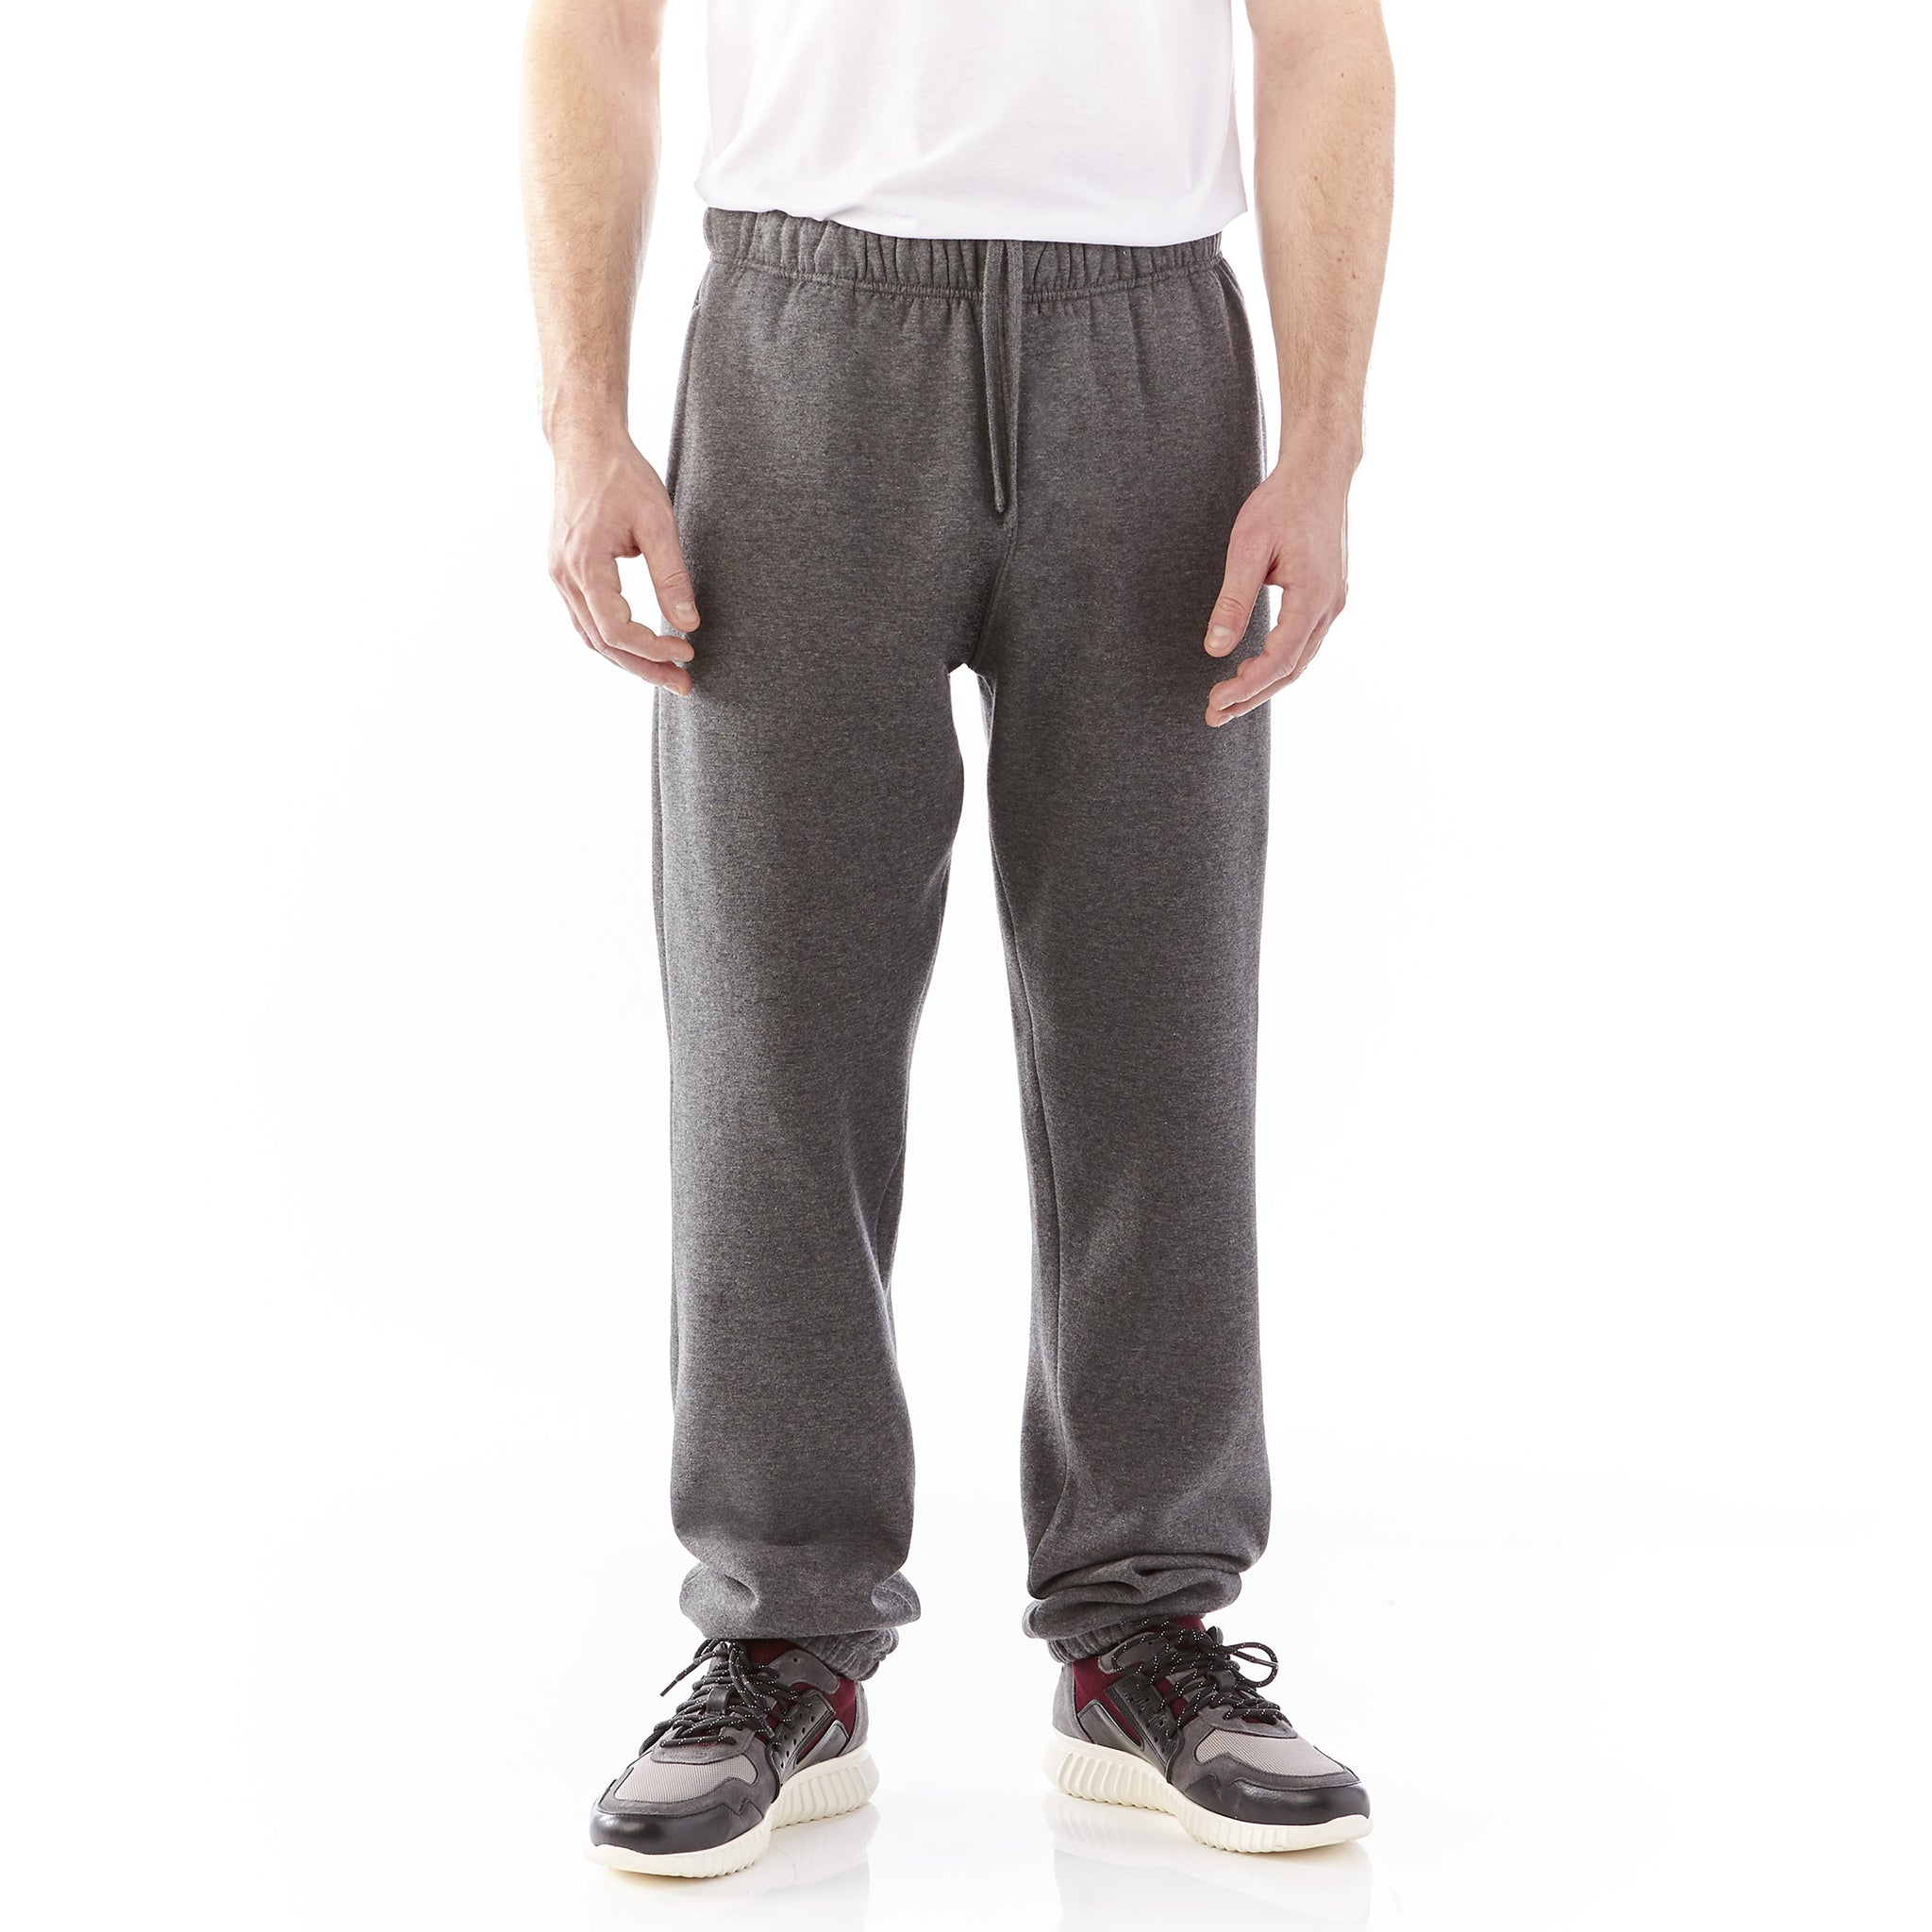 TRIMARK MEN'S RUDALL FLEECE PANT